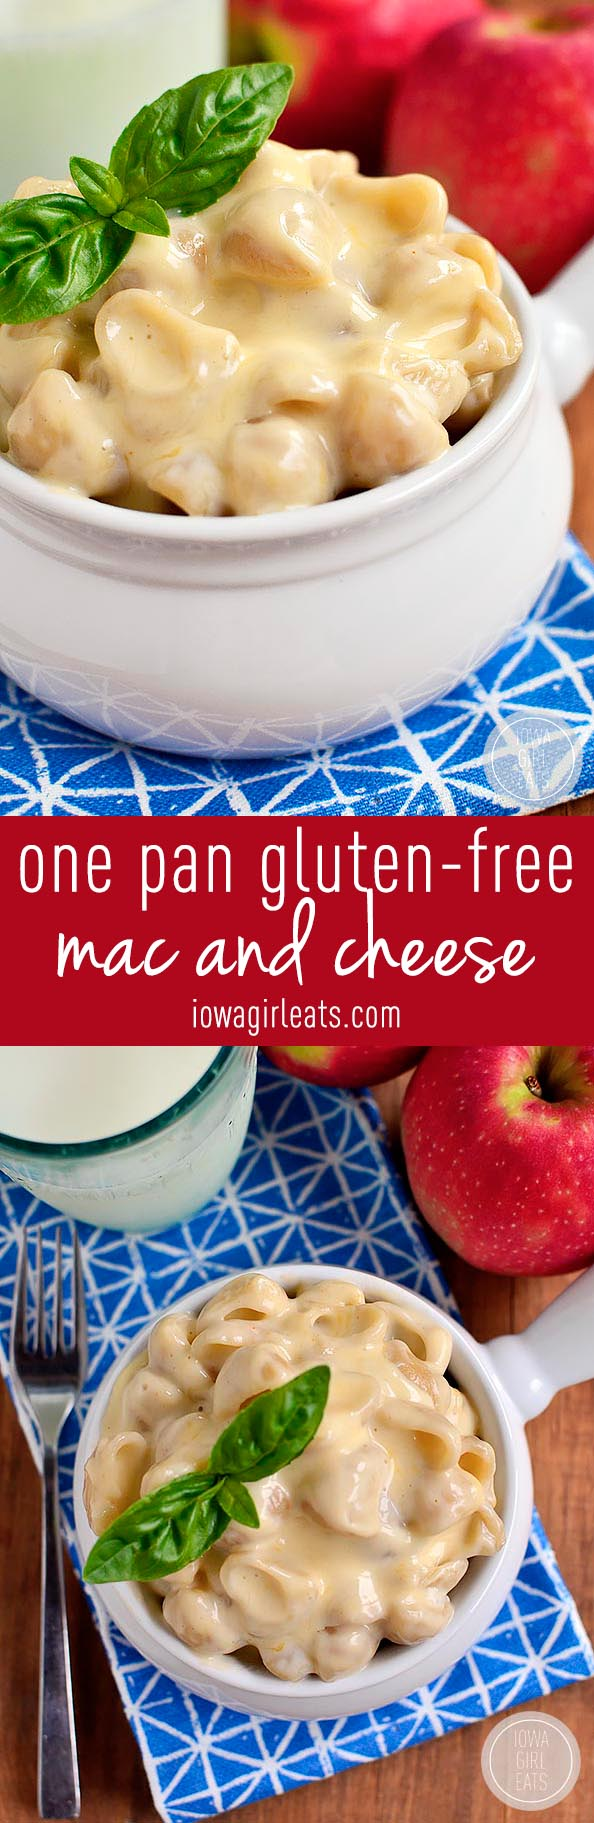 One Pot Gluten-Free Mac and Cheese | Iowa Girl Eats ...